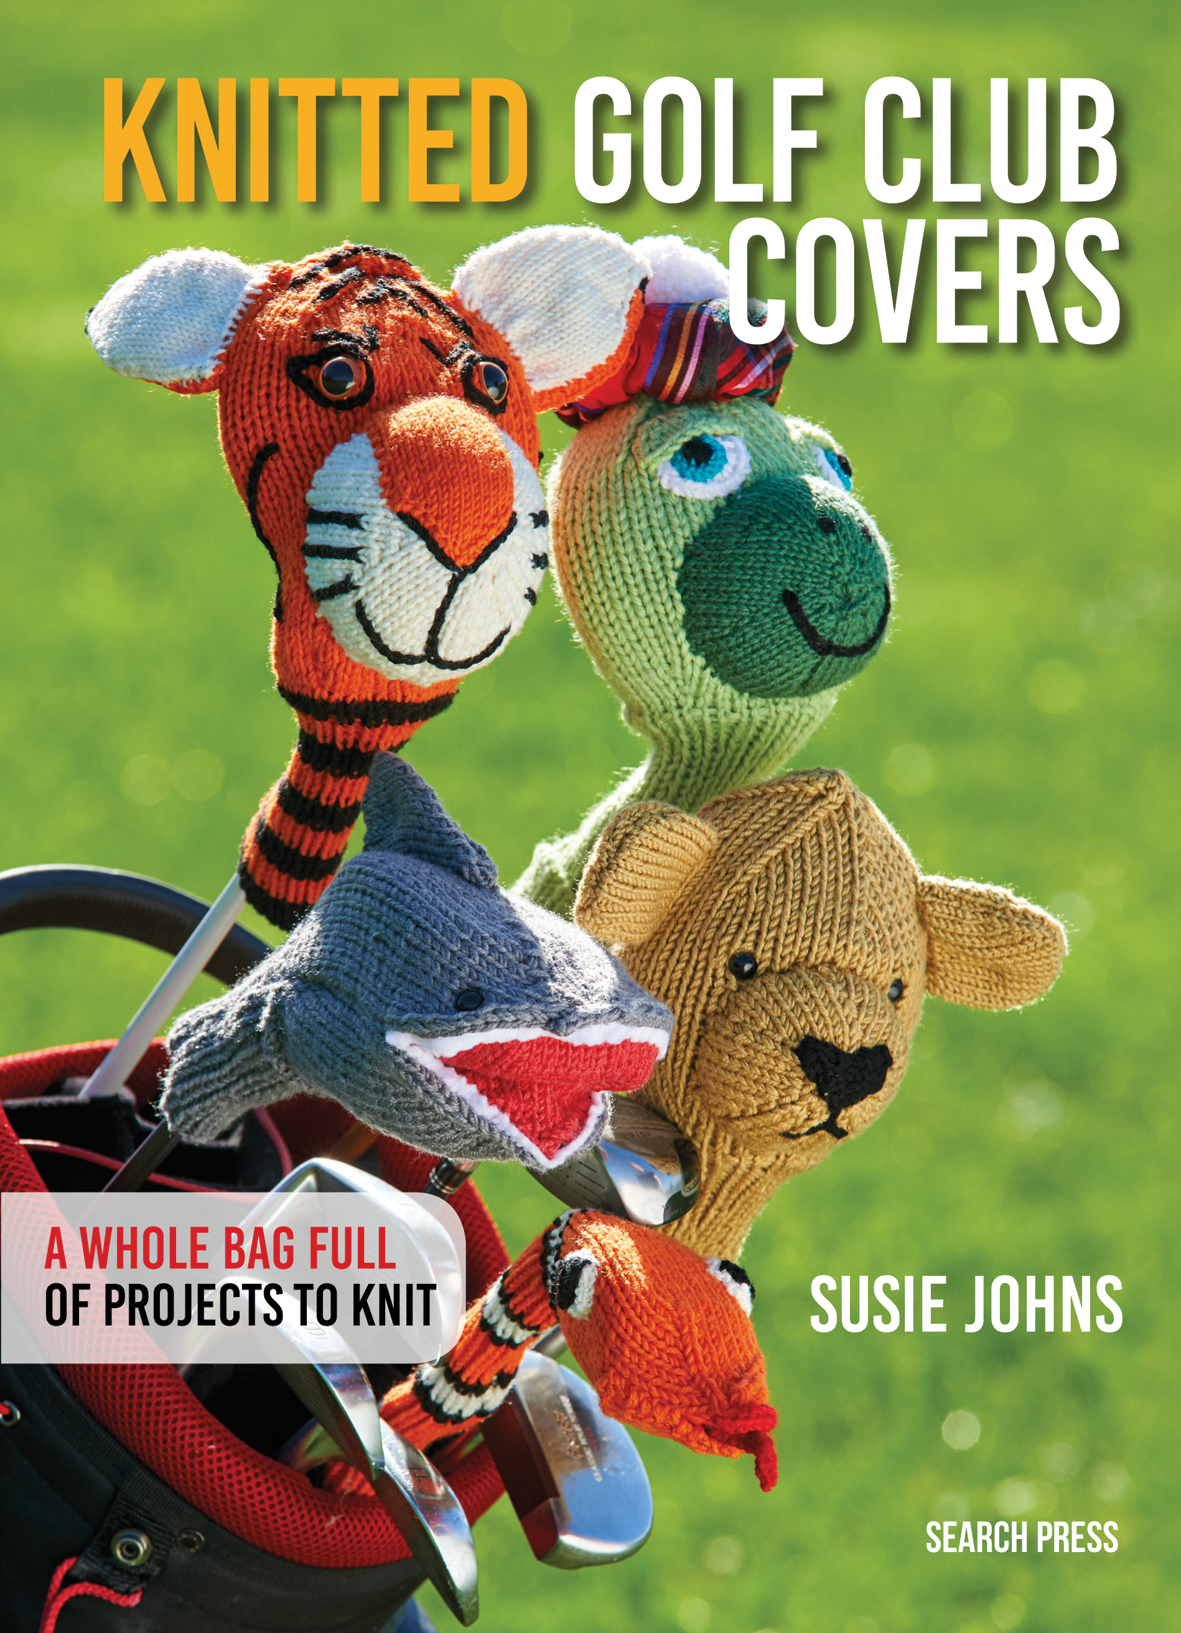 Search Press | Knitted Golf Club Covers by Susie Johns